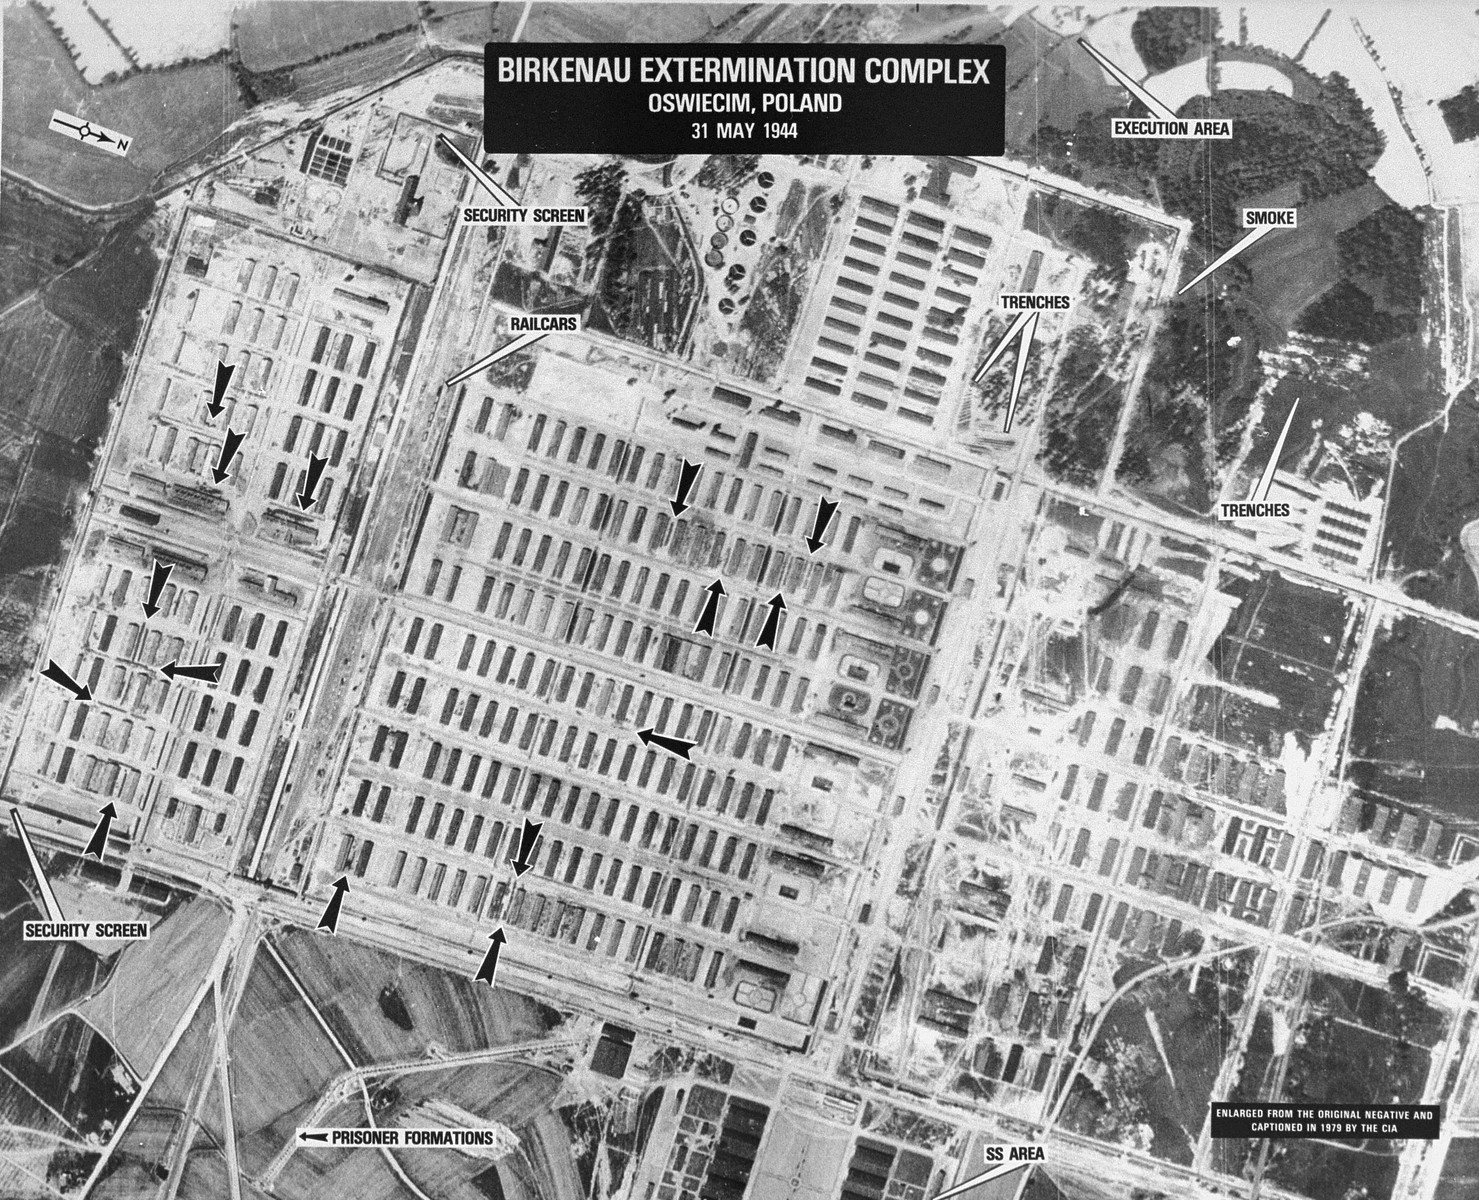 An aerial reconnaissance photograph of the Auschwitz concentration camp showing Auschwitz II (Birkenau), including the gypsy camp.